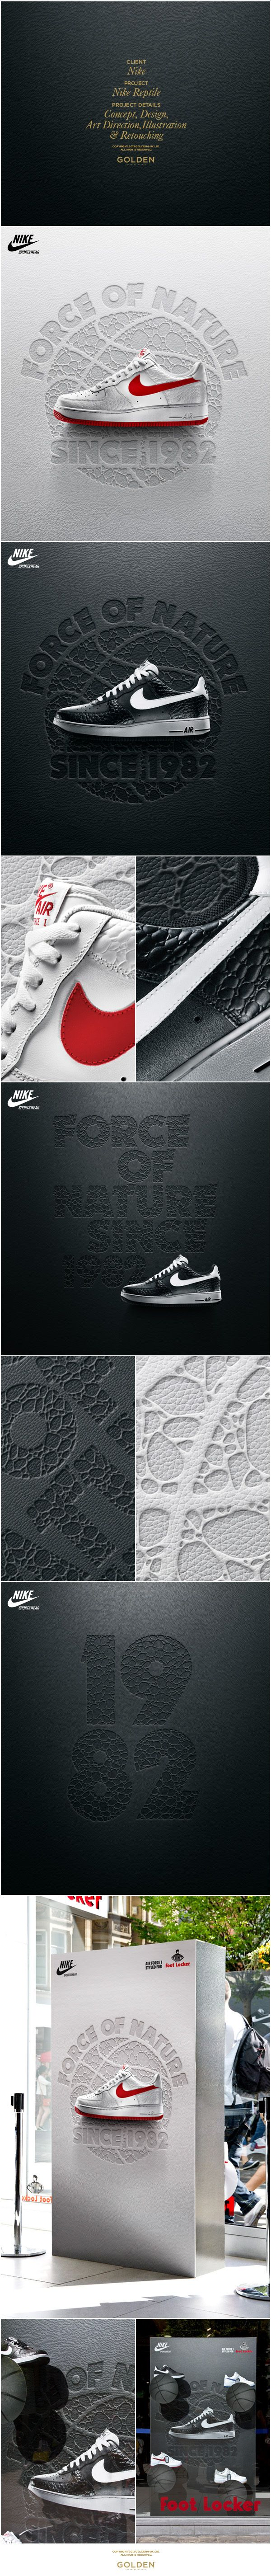 Nike Reptile on Behance